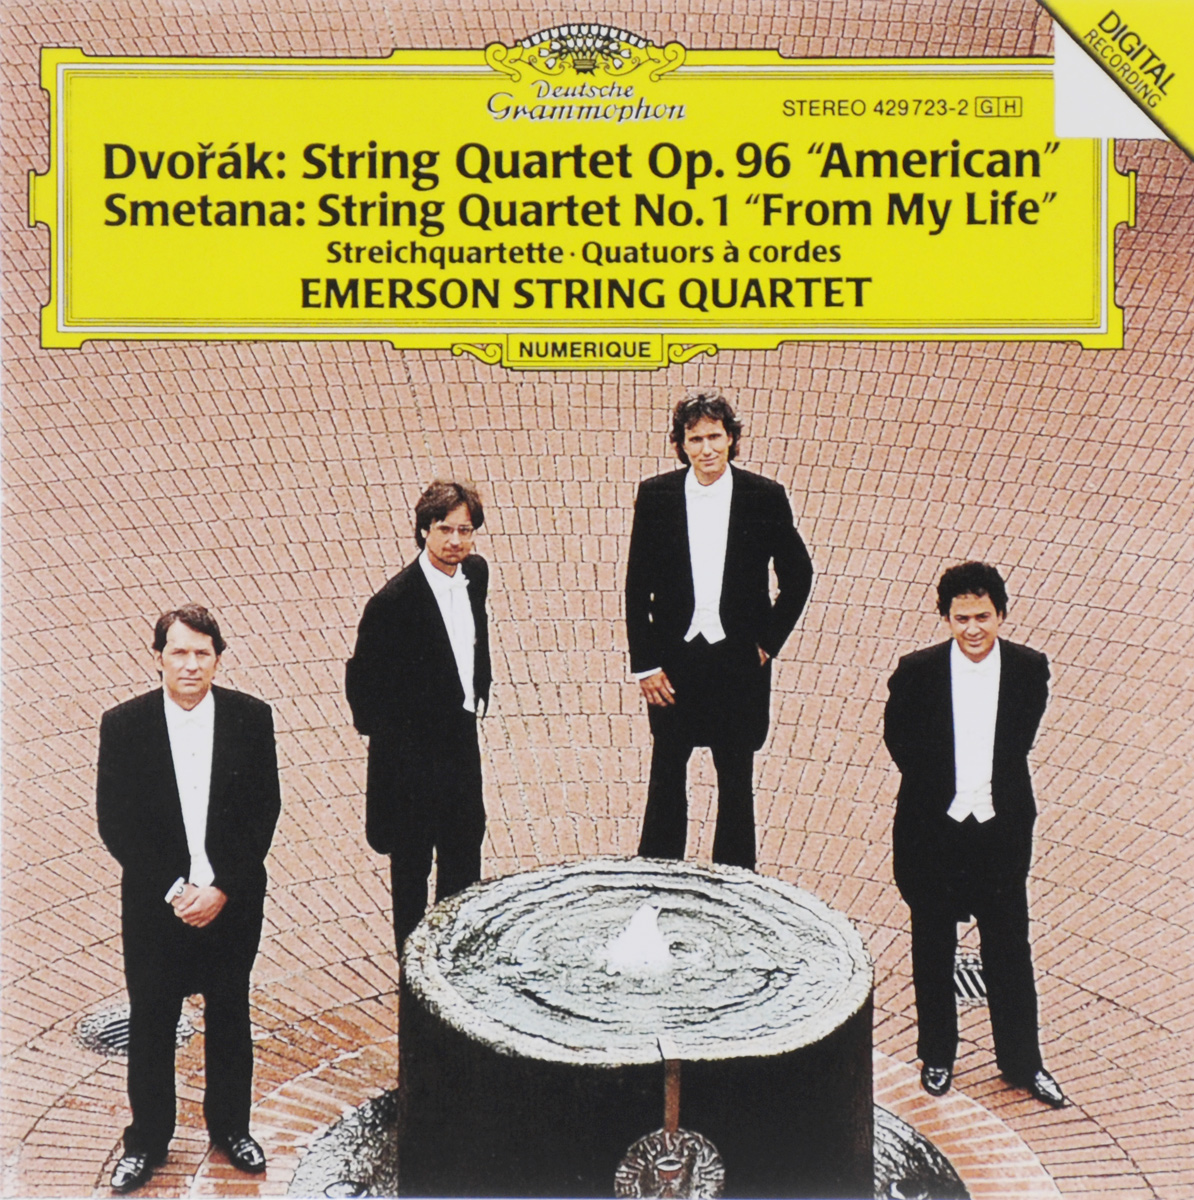 Emerson String Quartet Emerson String Quartet. String Quartet Op. 96 American / String Quartet No. 1 From My Life жарков н autocad 2010 офиц рус версия эффектив самоучитель